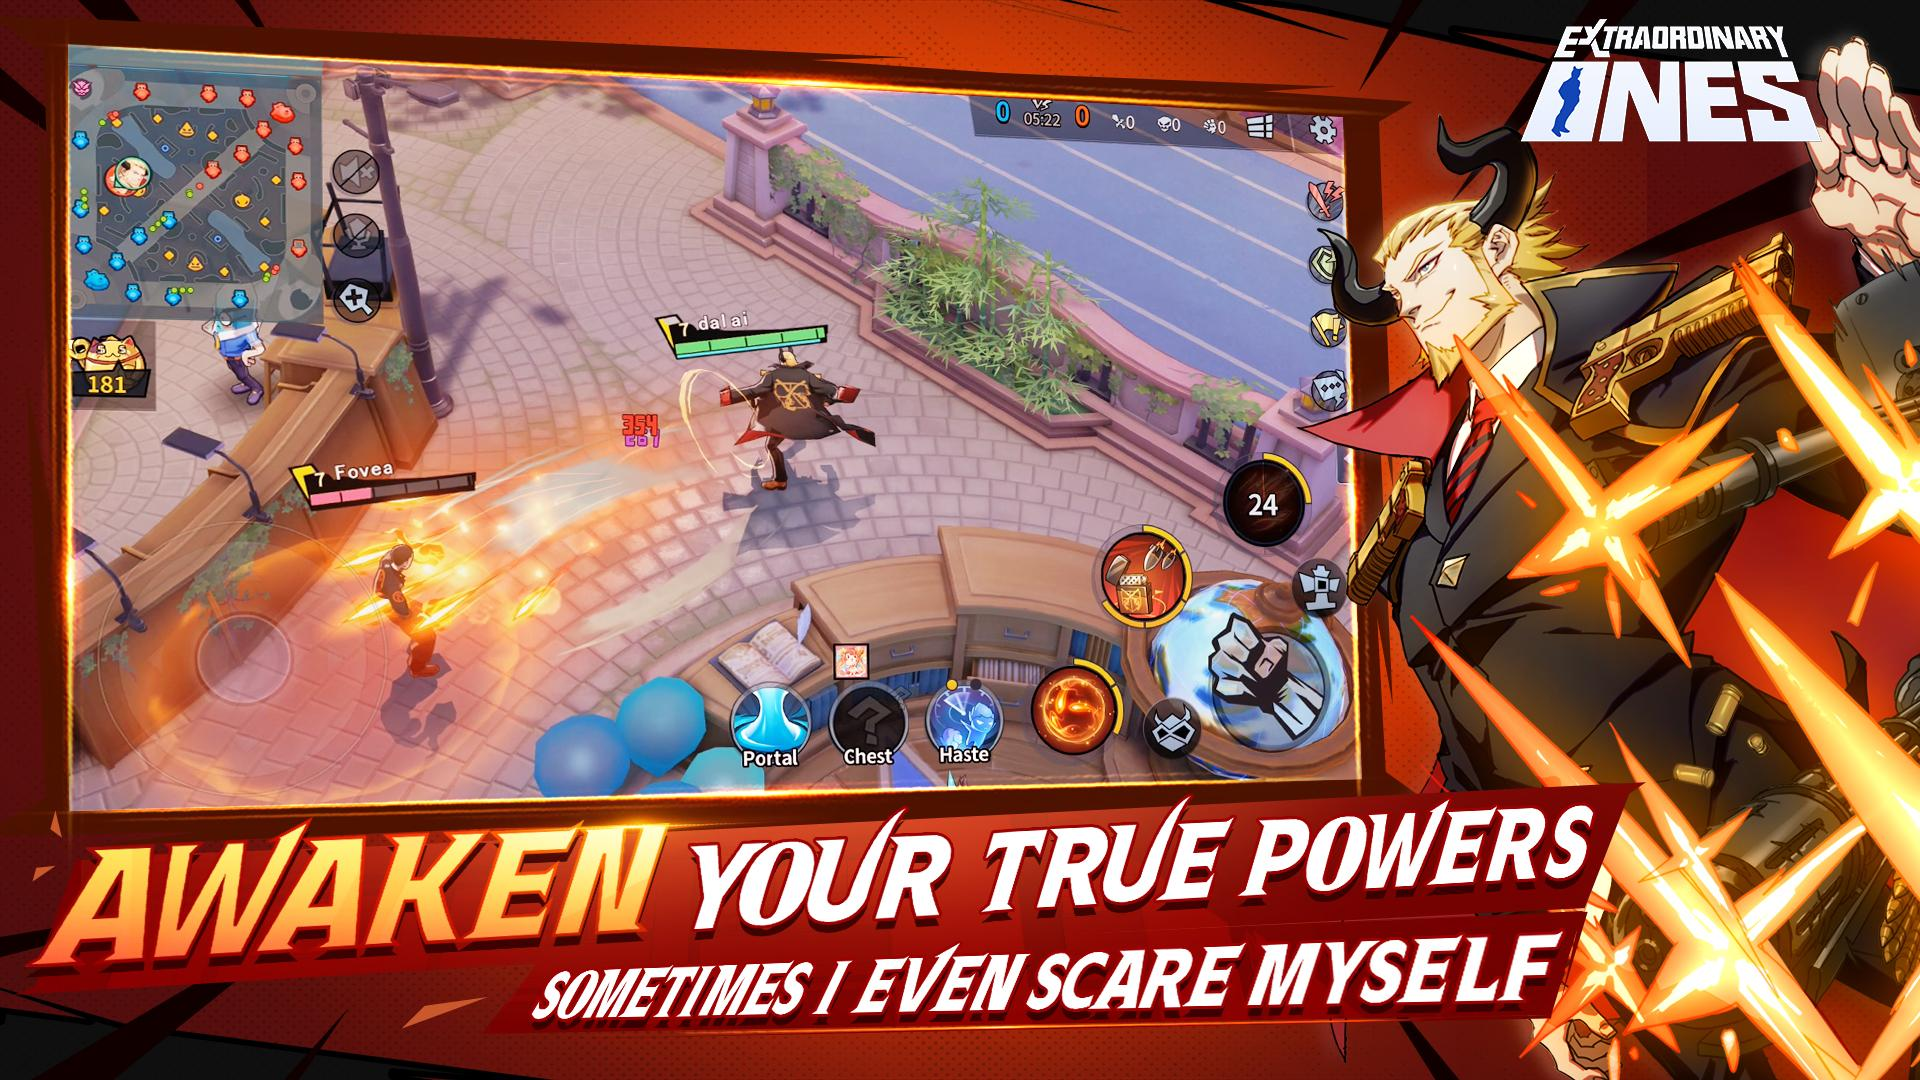 Capture d'écran Extraordinary Ones: Anime-style 5V5 MOBA Android